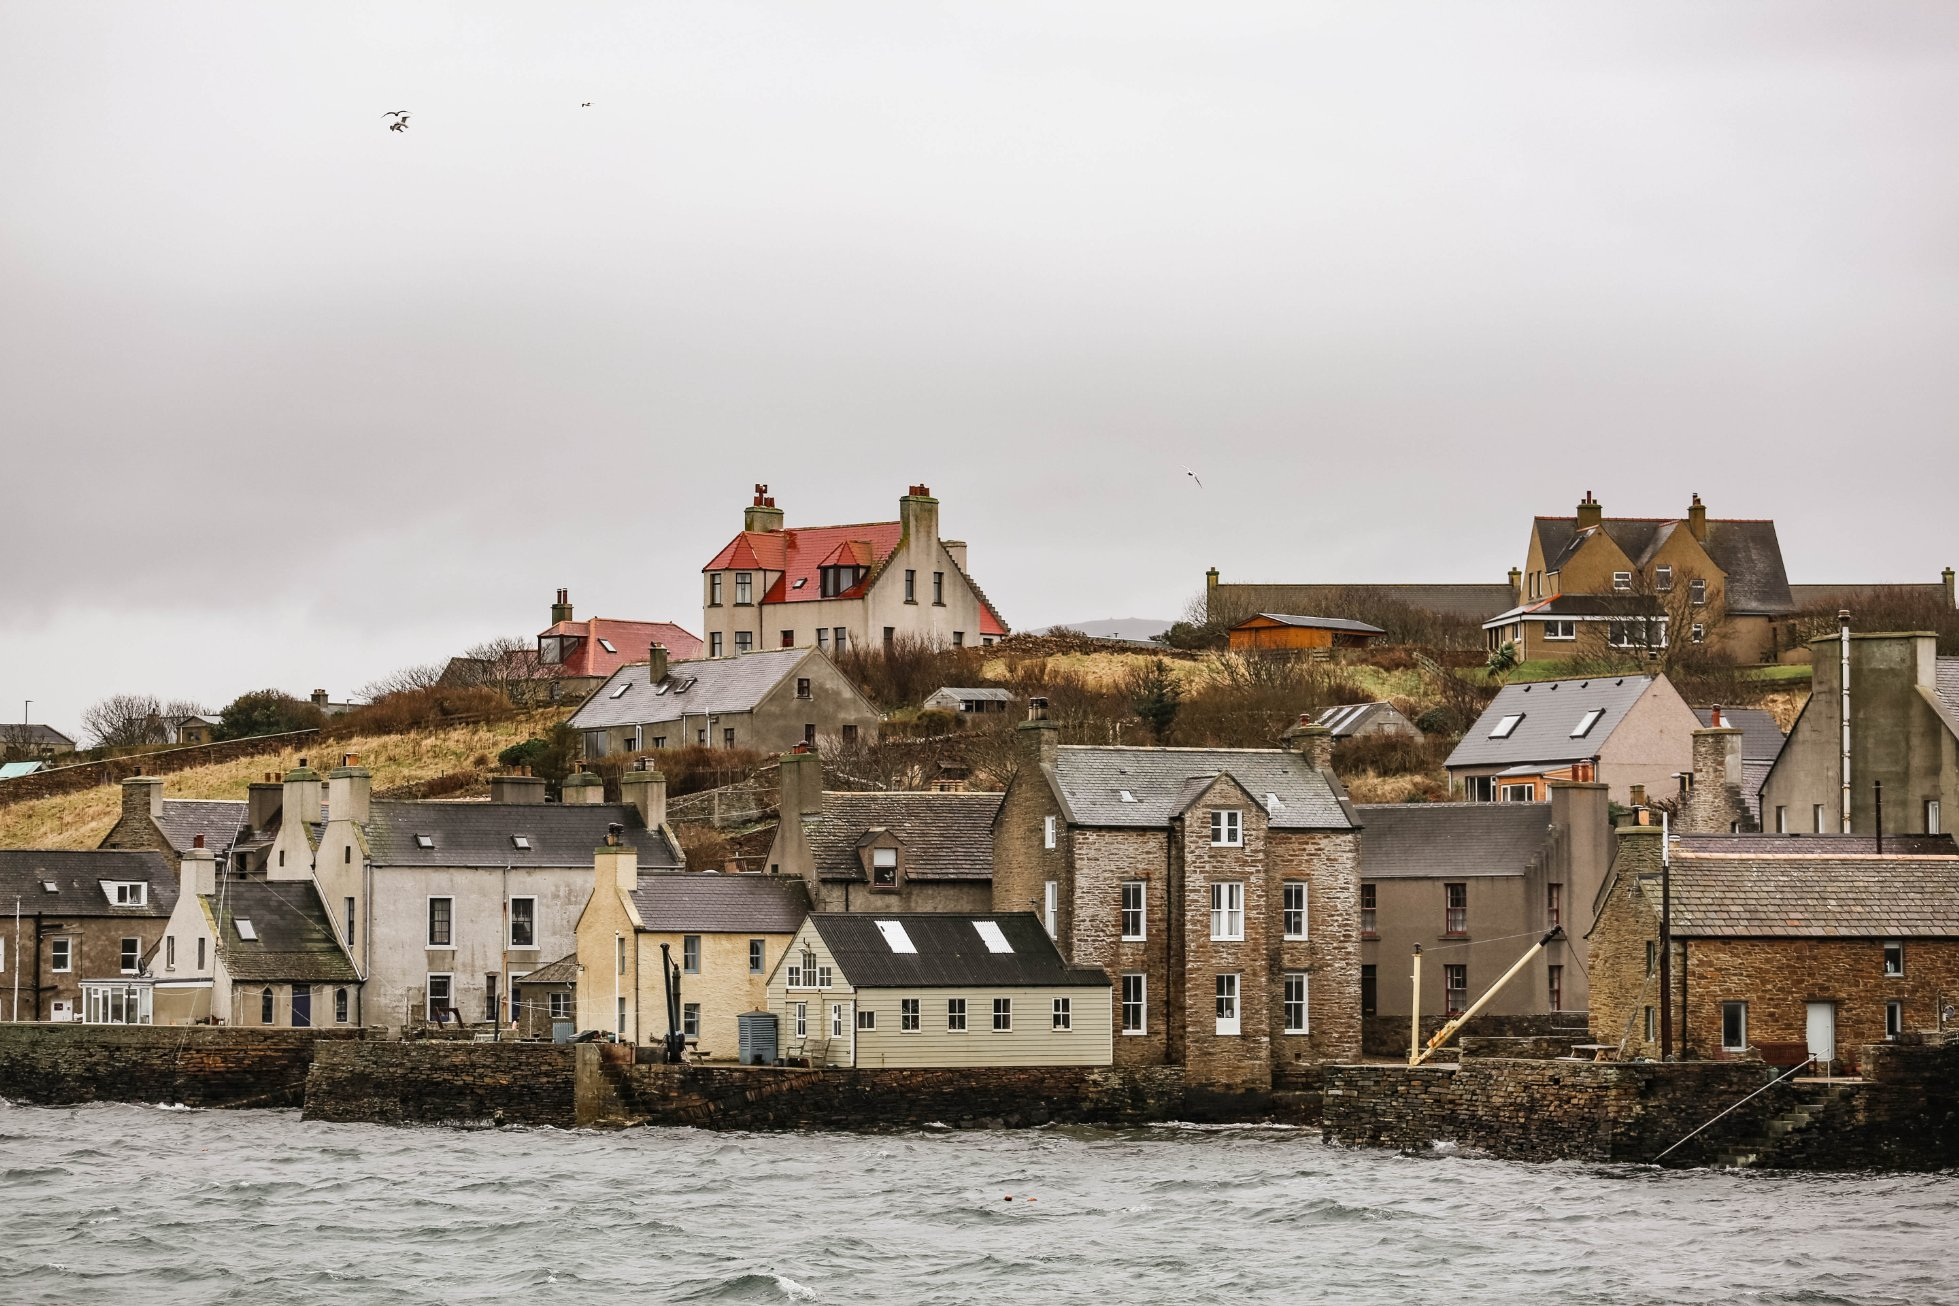 Stromness, Orkney - image by Fiona Annal